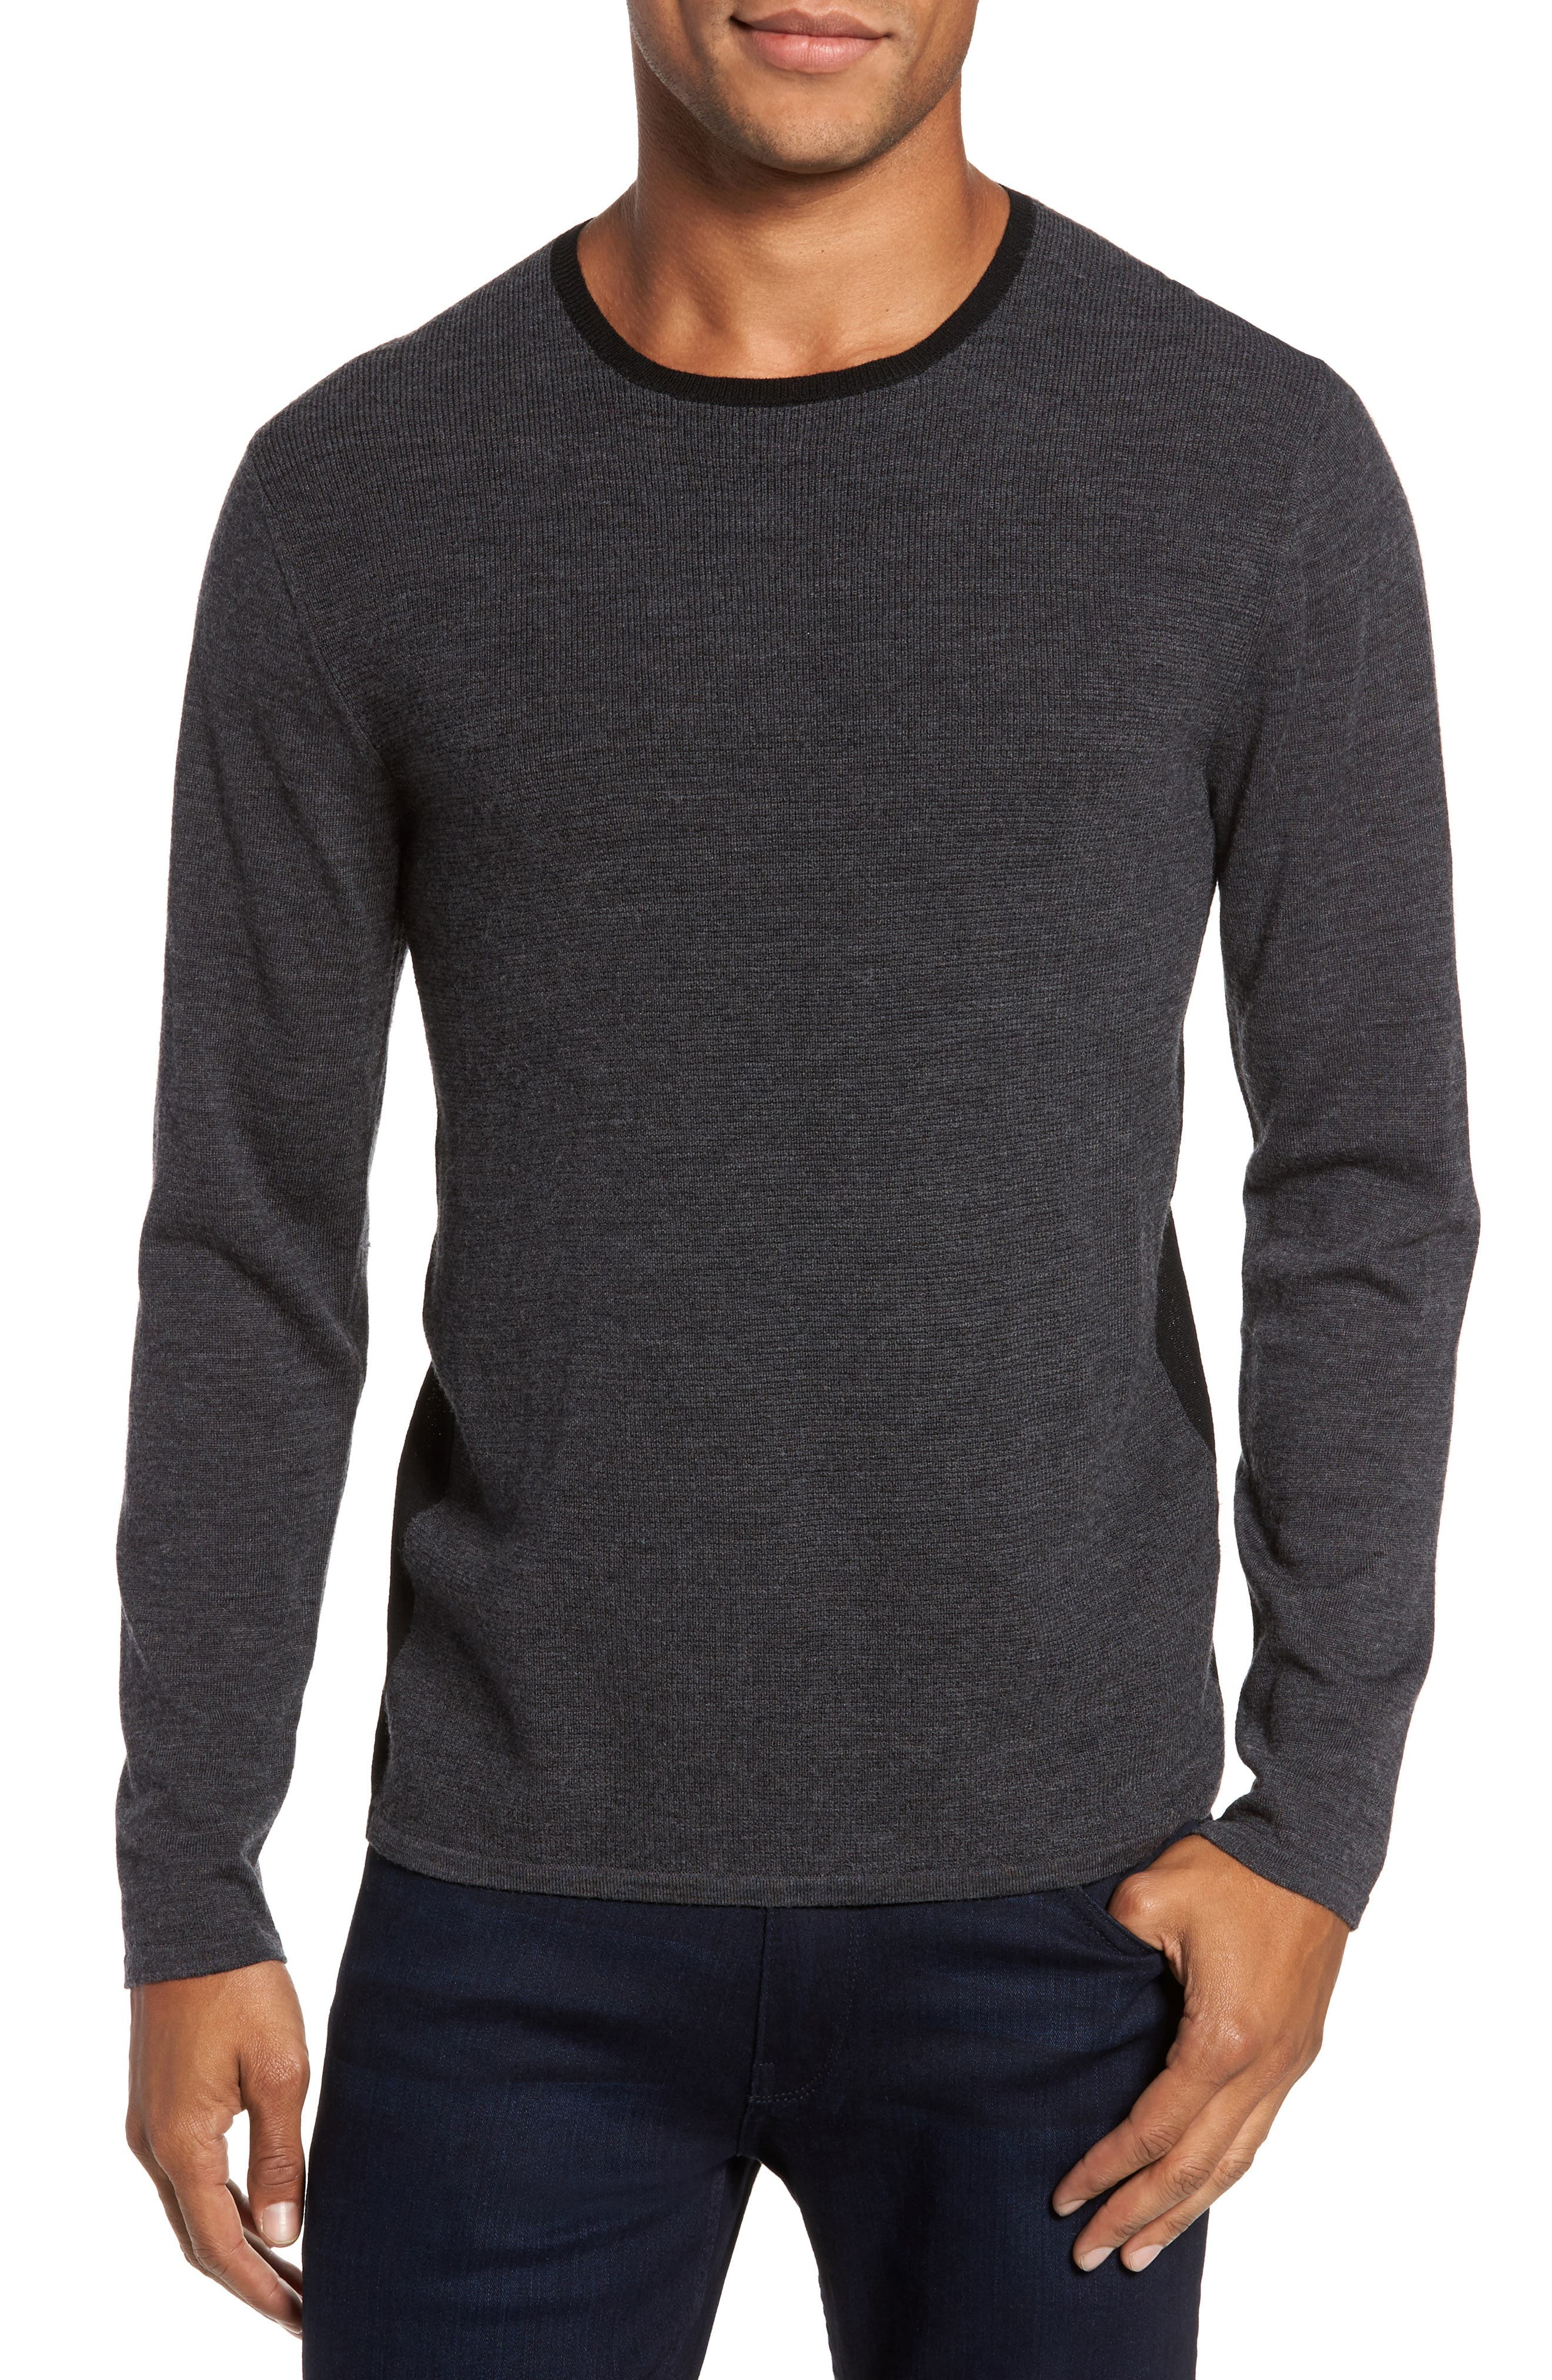 Huxley Merino Sweater,                         Main,                         color, 021